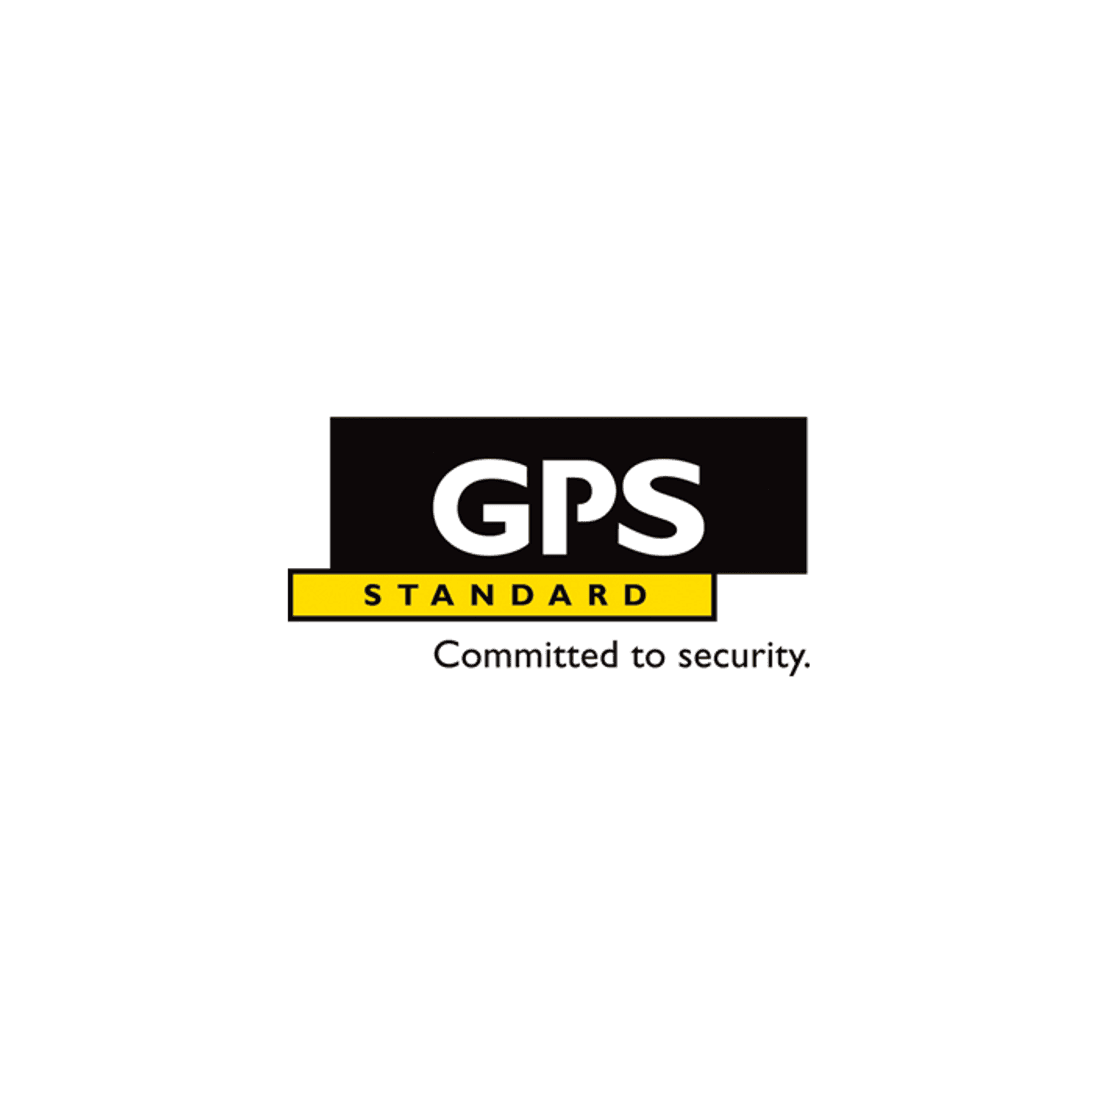 GPS STANDARD COMMITTED TO SICURITY TRENTO